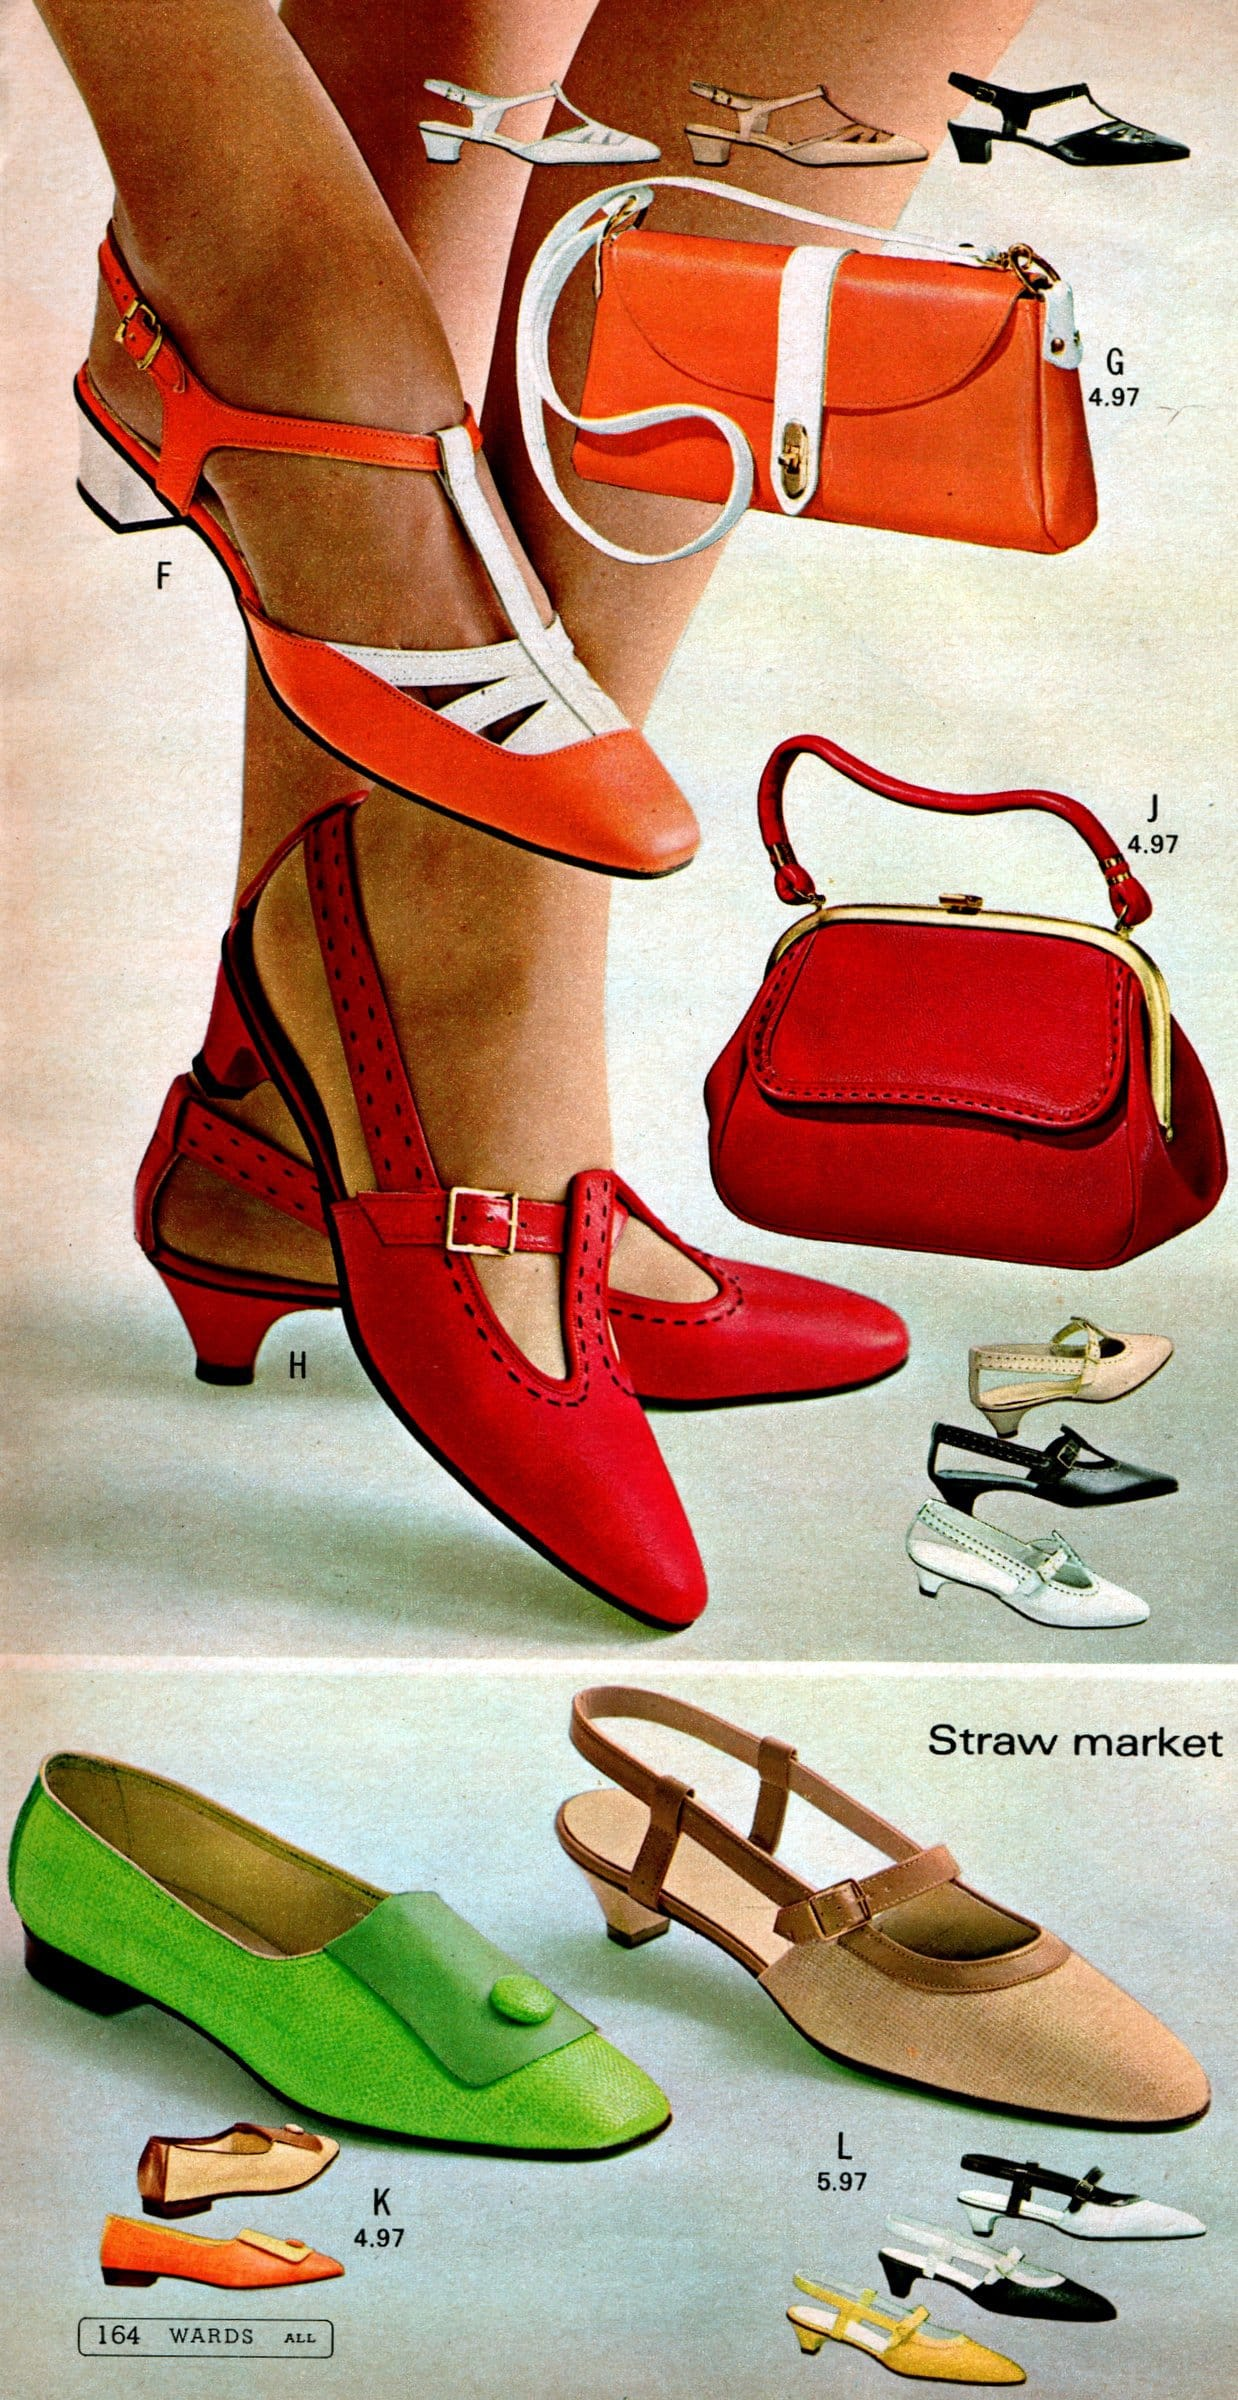 T-strap shoes with tiny heels and blunt toes (1968)